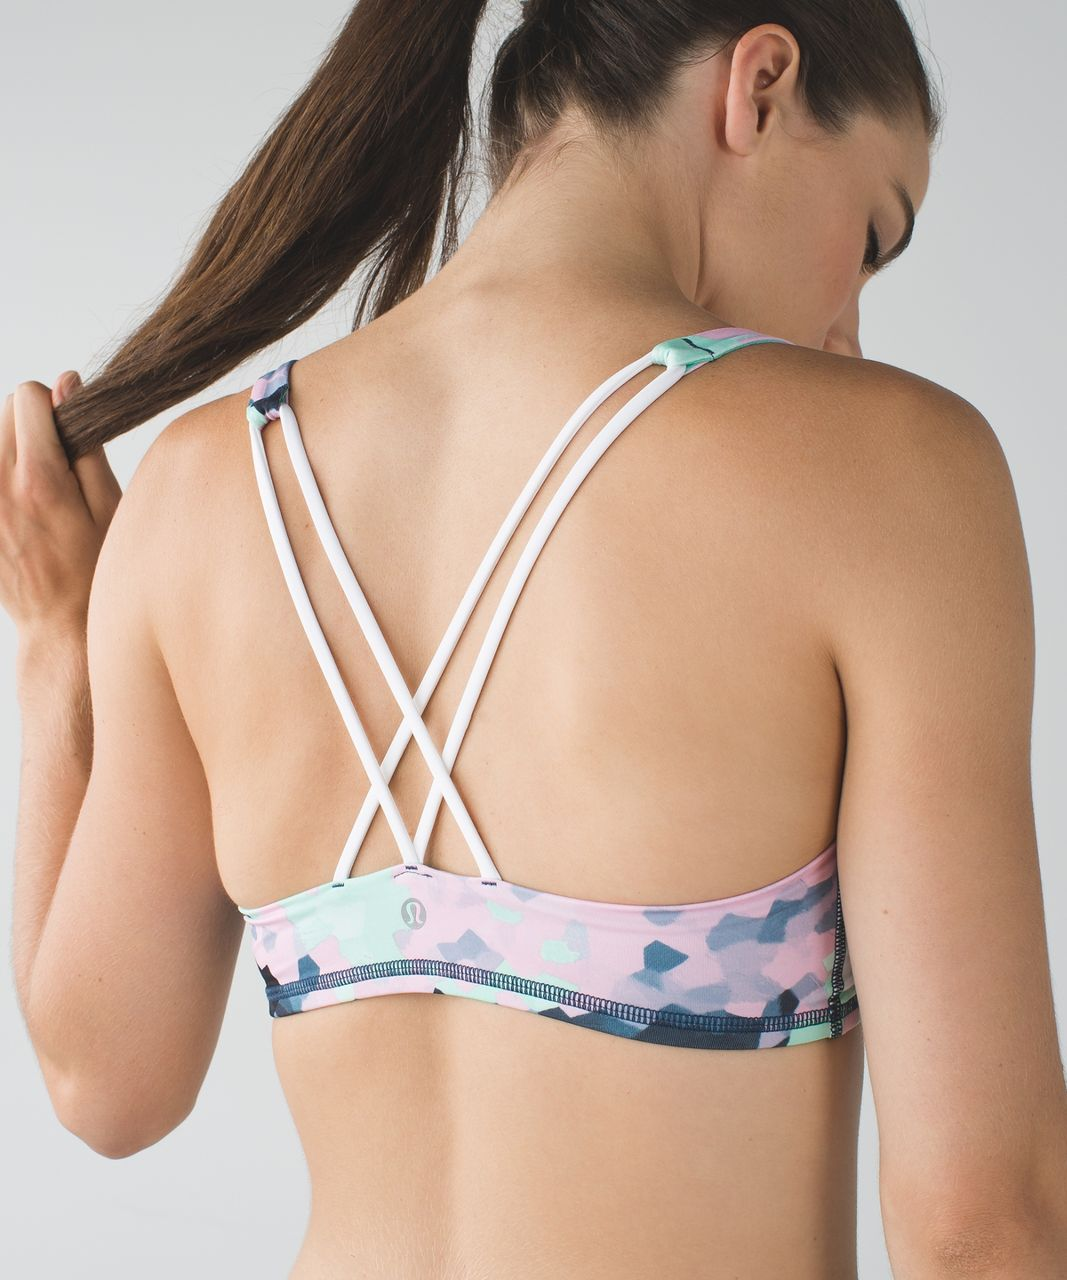 Lululemon Free To Be Bra - Clouded Dreams Multi / White